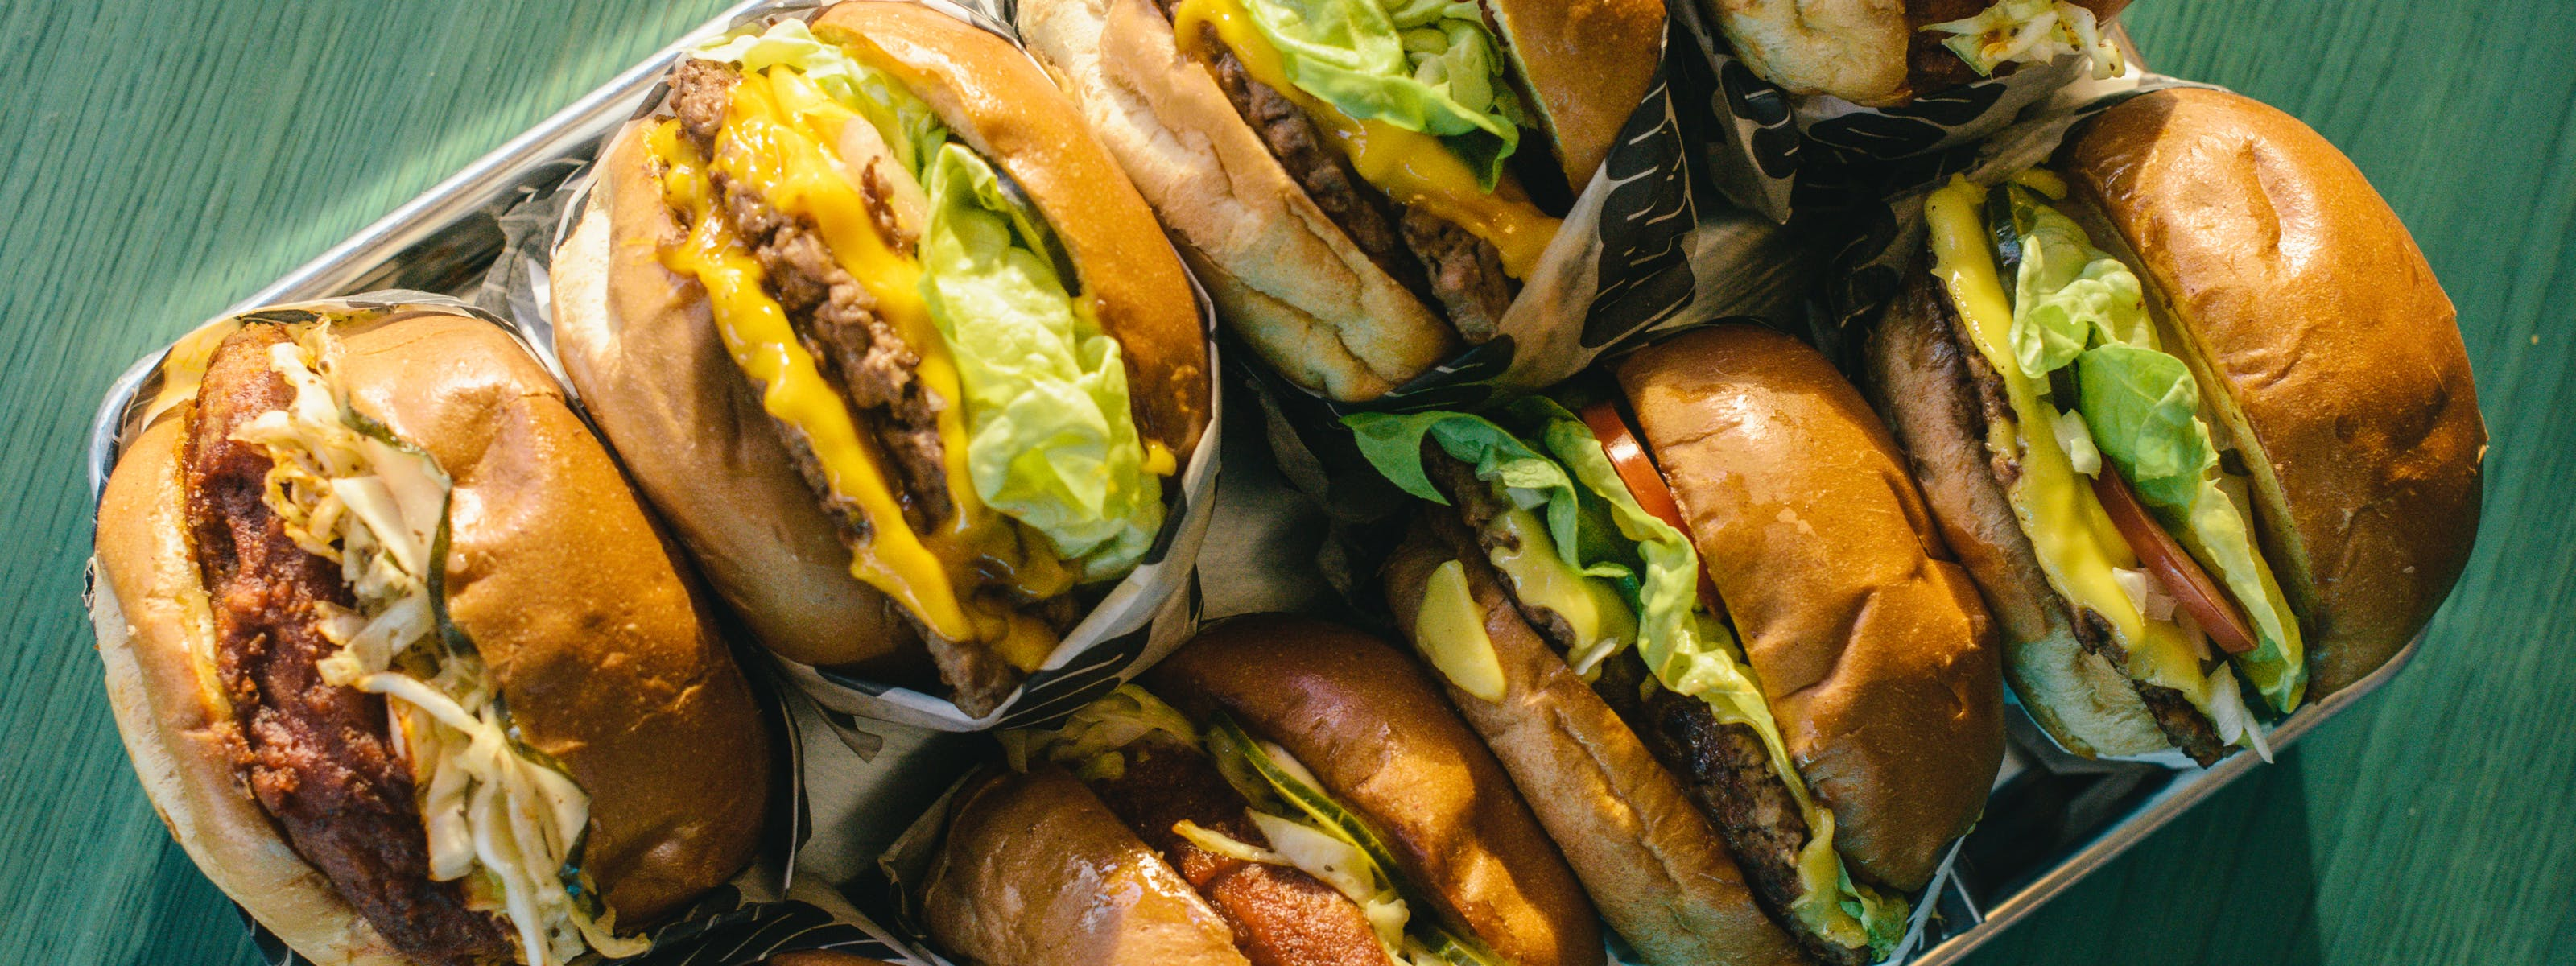 The Best New Burgers In LA - Los Angeles - The Infatuation